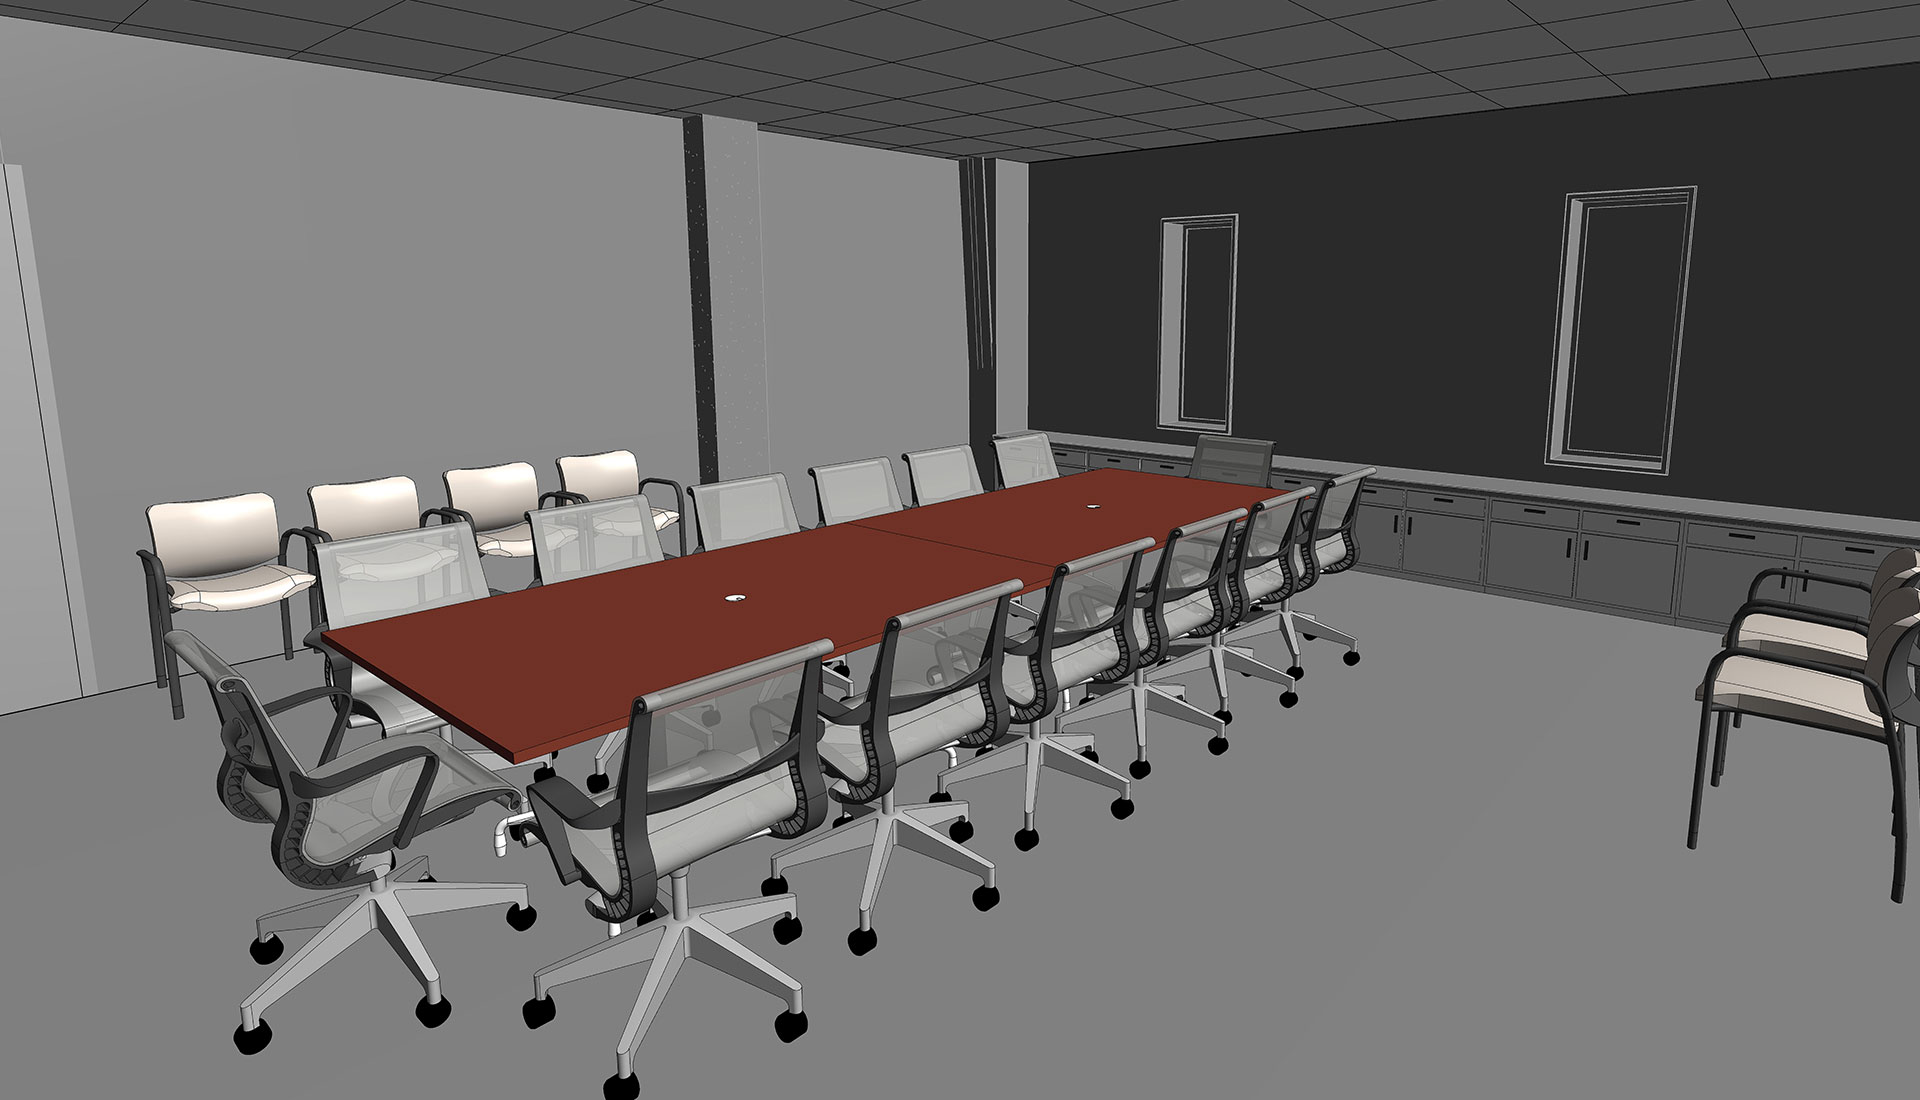 Room-with-3D-Revit-Families_Architectural-Model_Industrial-Project_Alloy-Specialities_BIM-Modeling-by-United-BIM